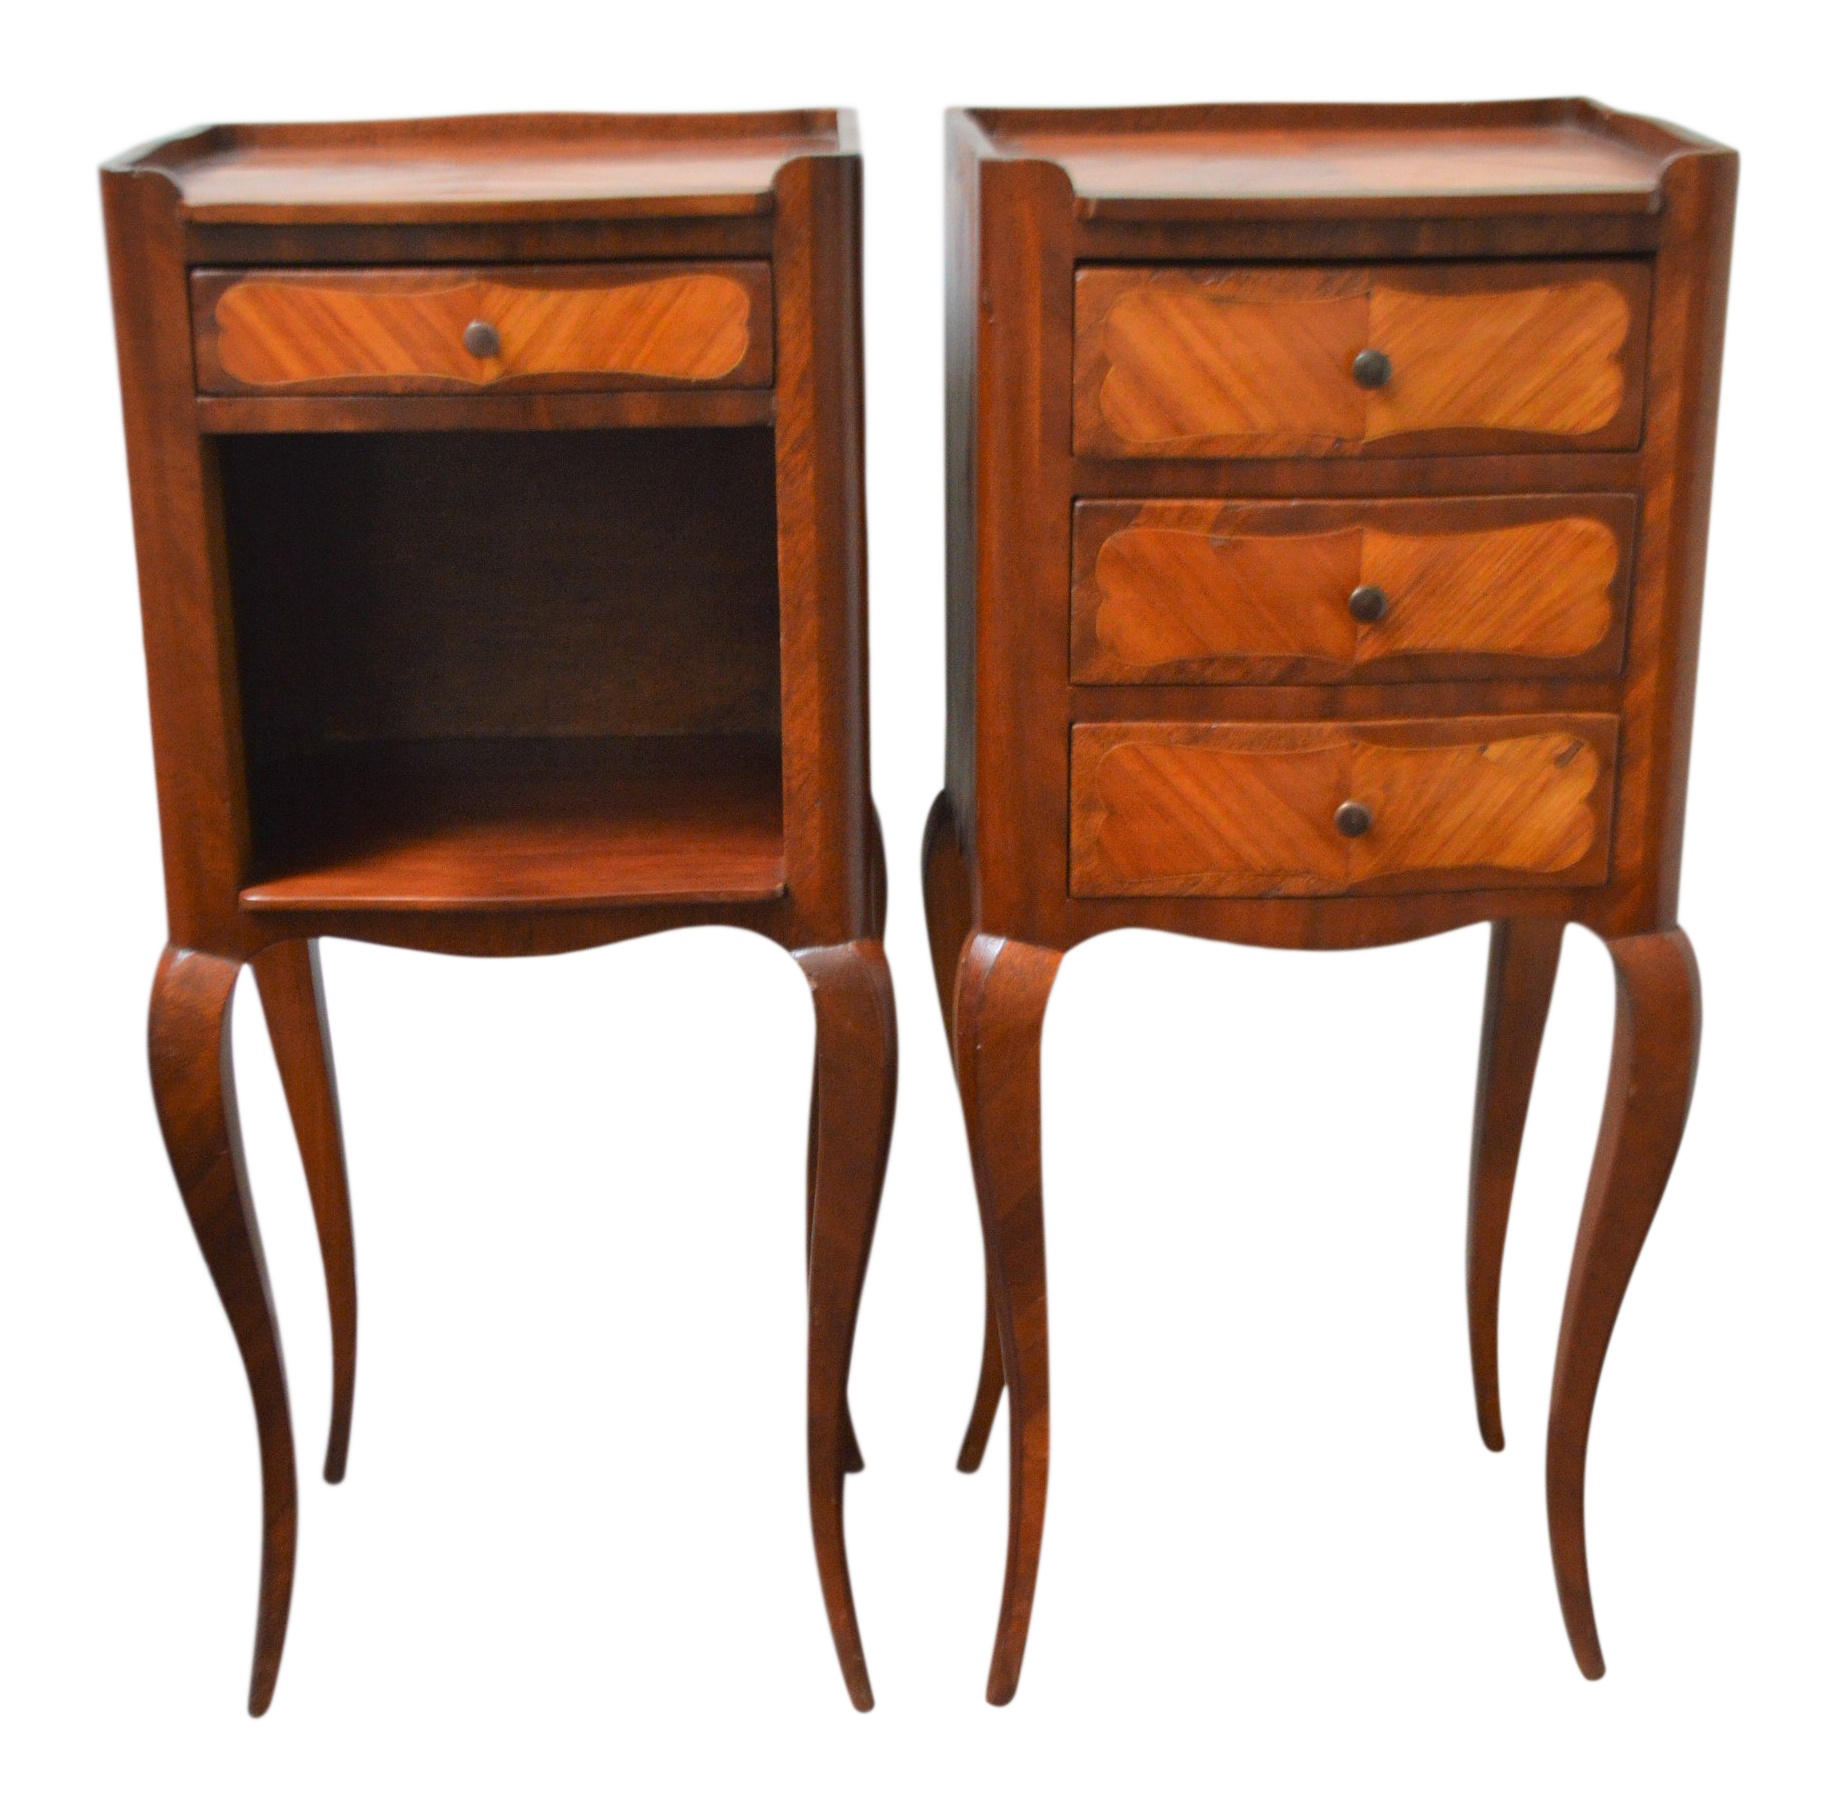 1920s French Small Transitional Style Inlay Wood Side Tables   A Pair For  Sale